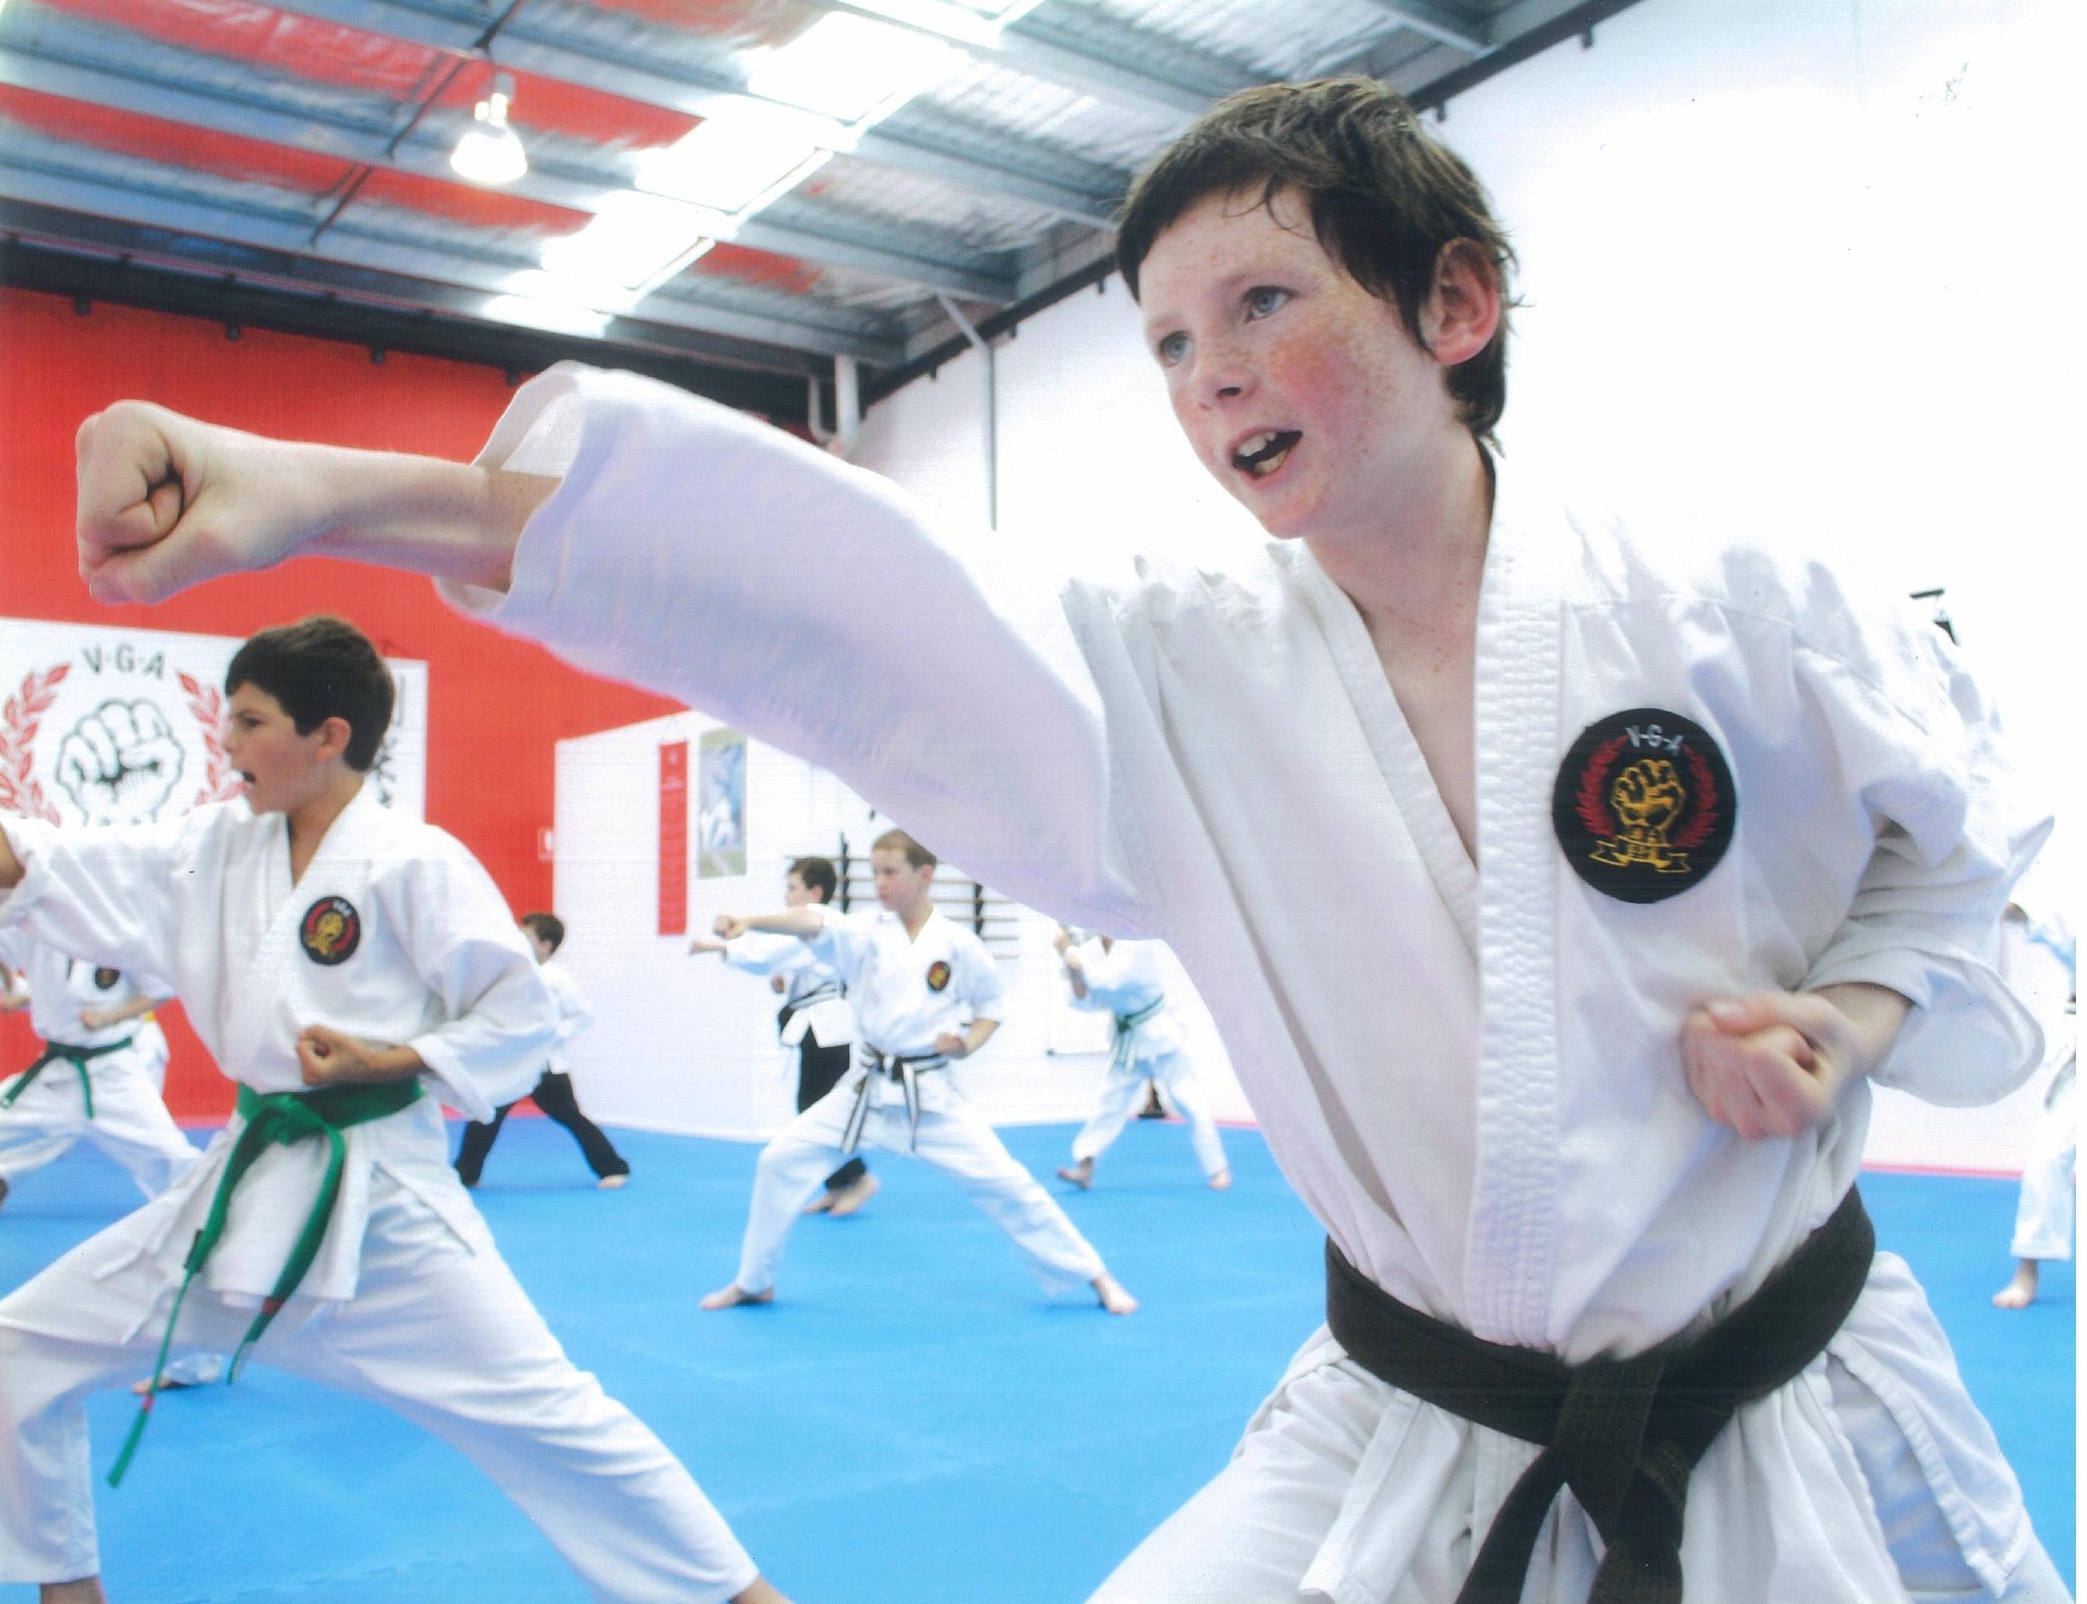 Children karate training 4